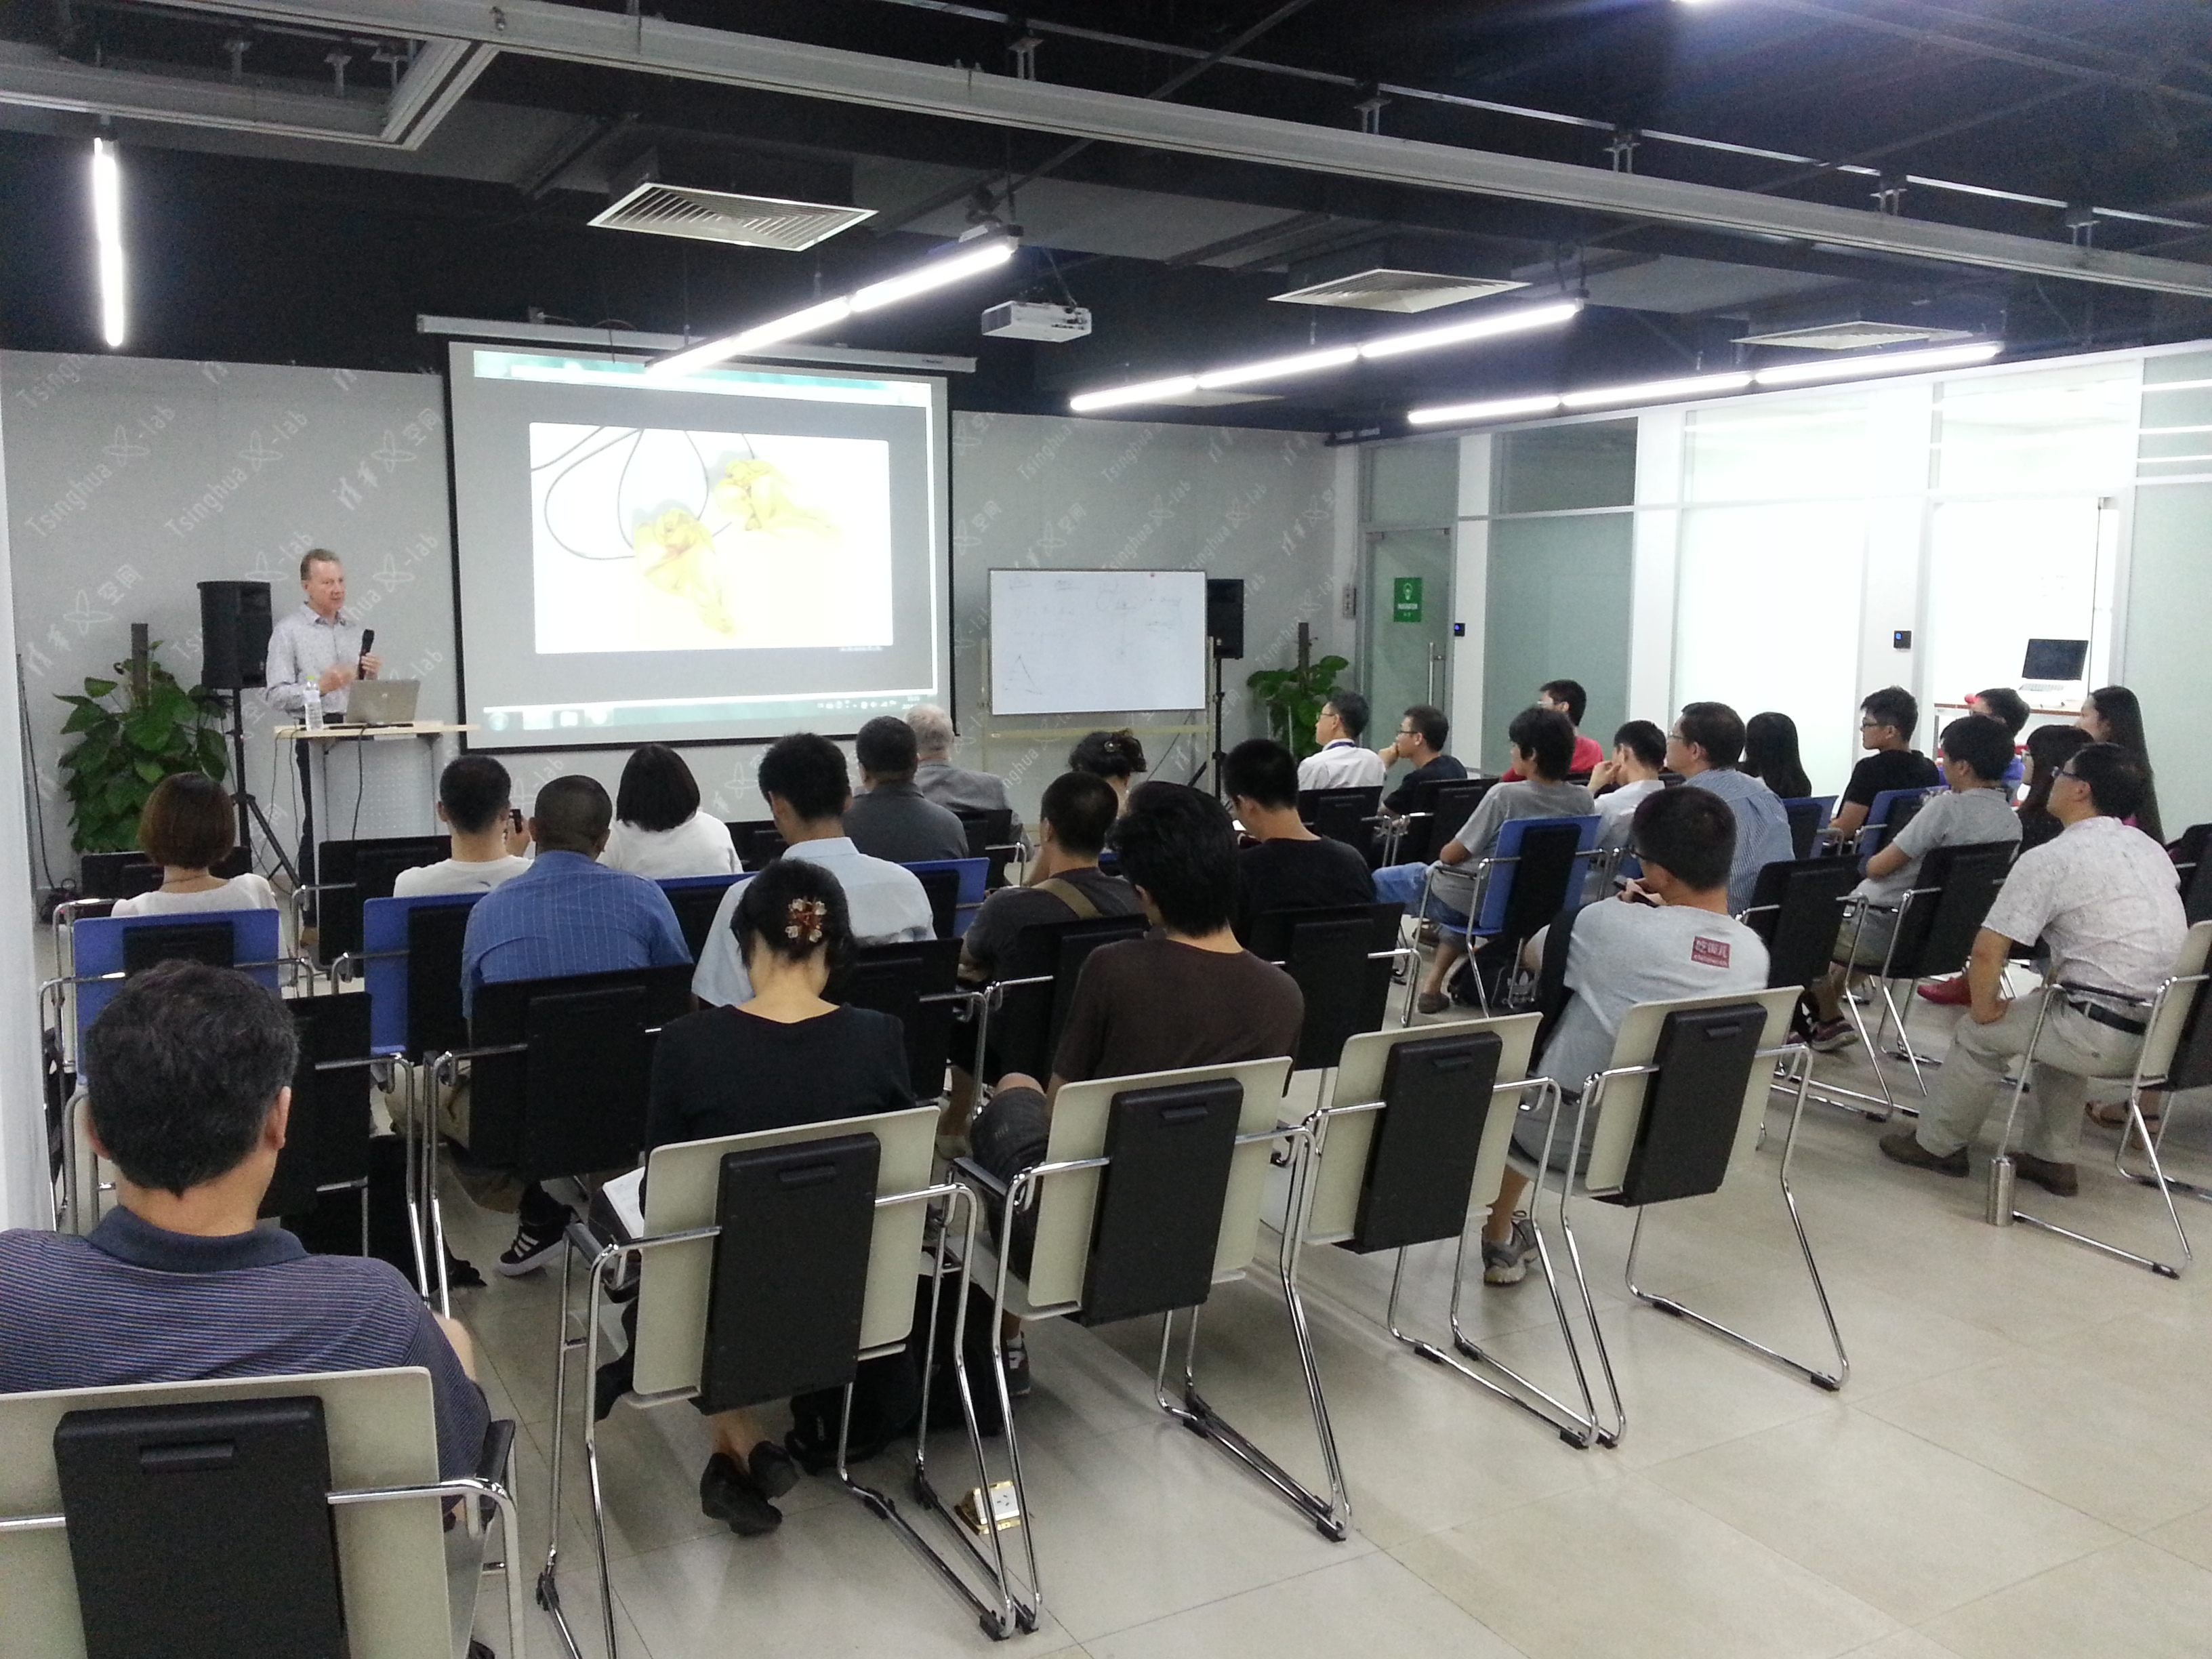 【x-lab Talk】The Era of Innovation by James Woudhuysen